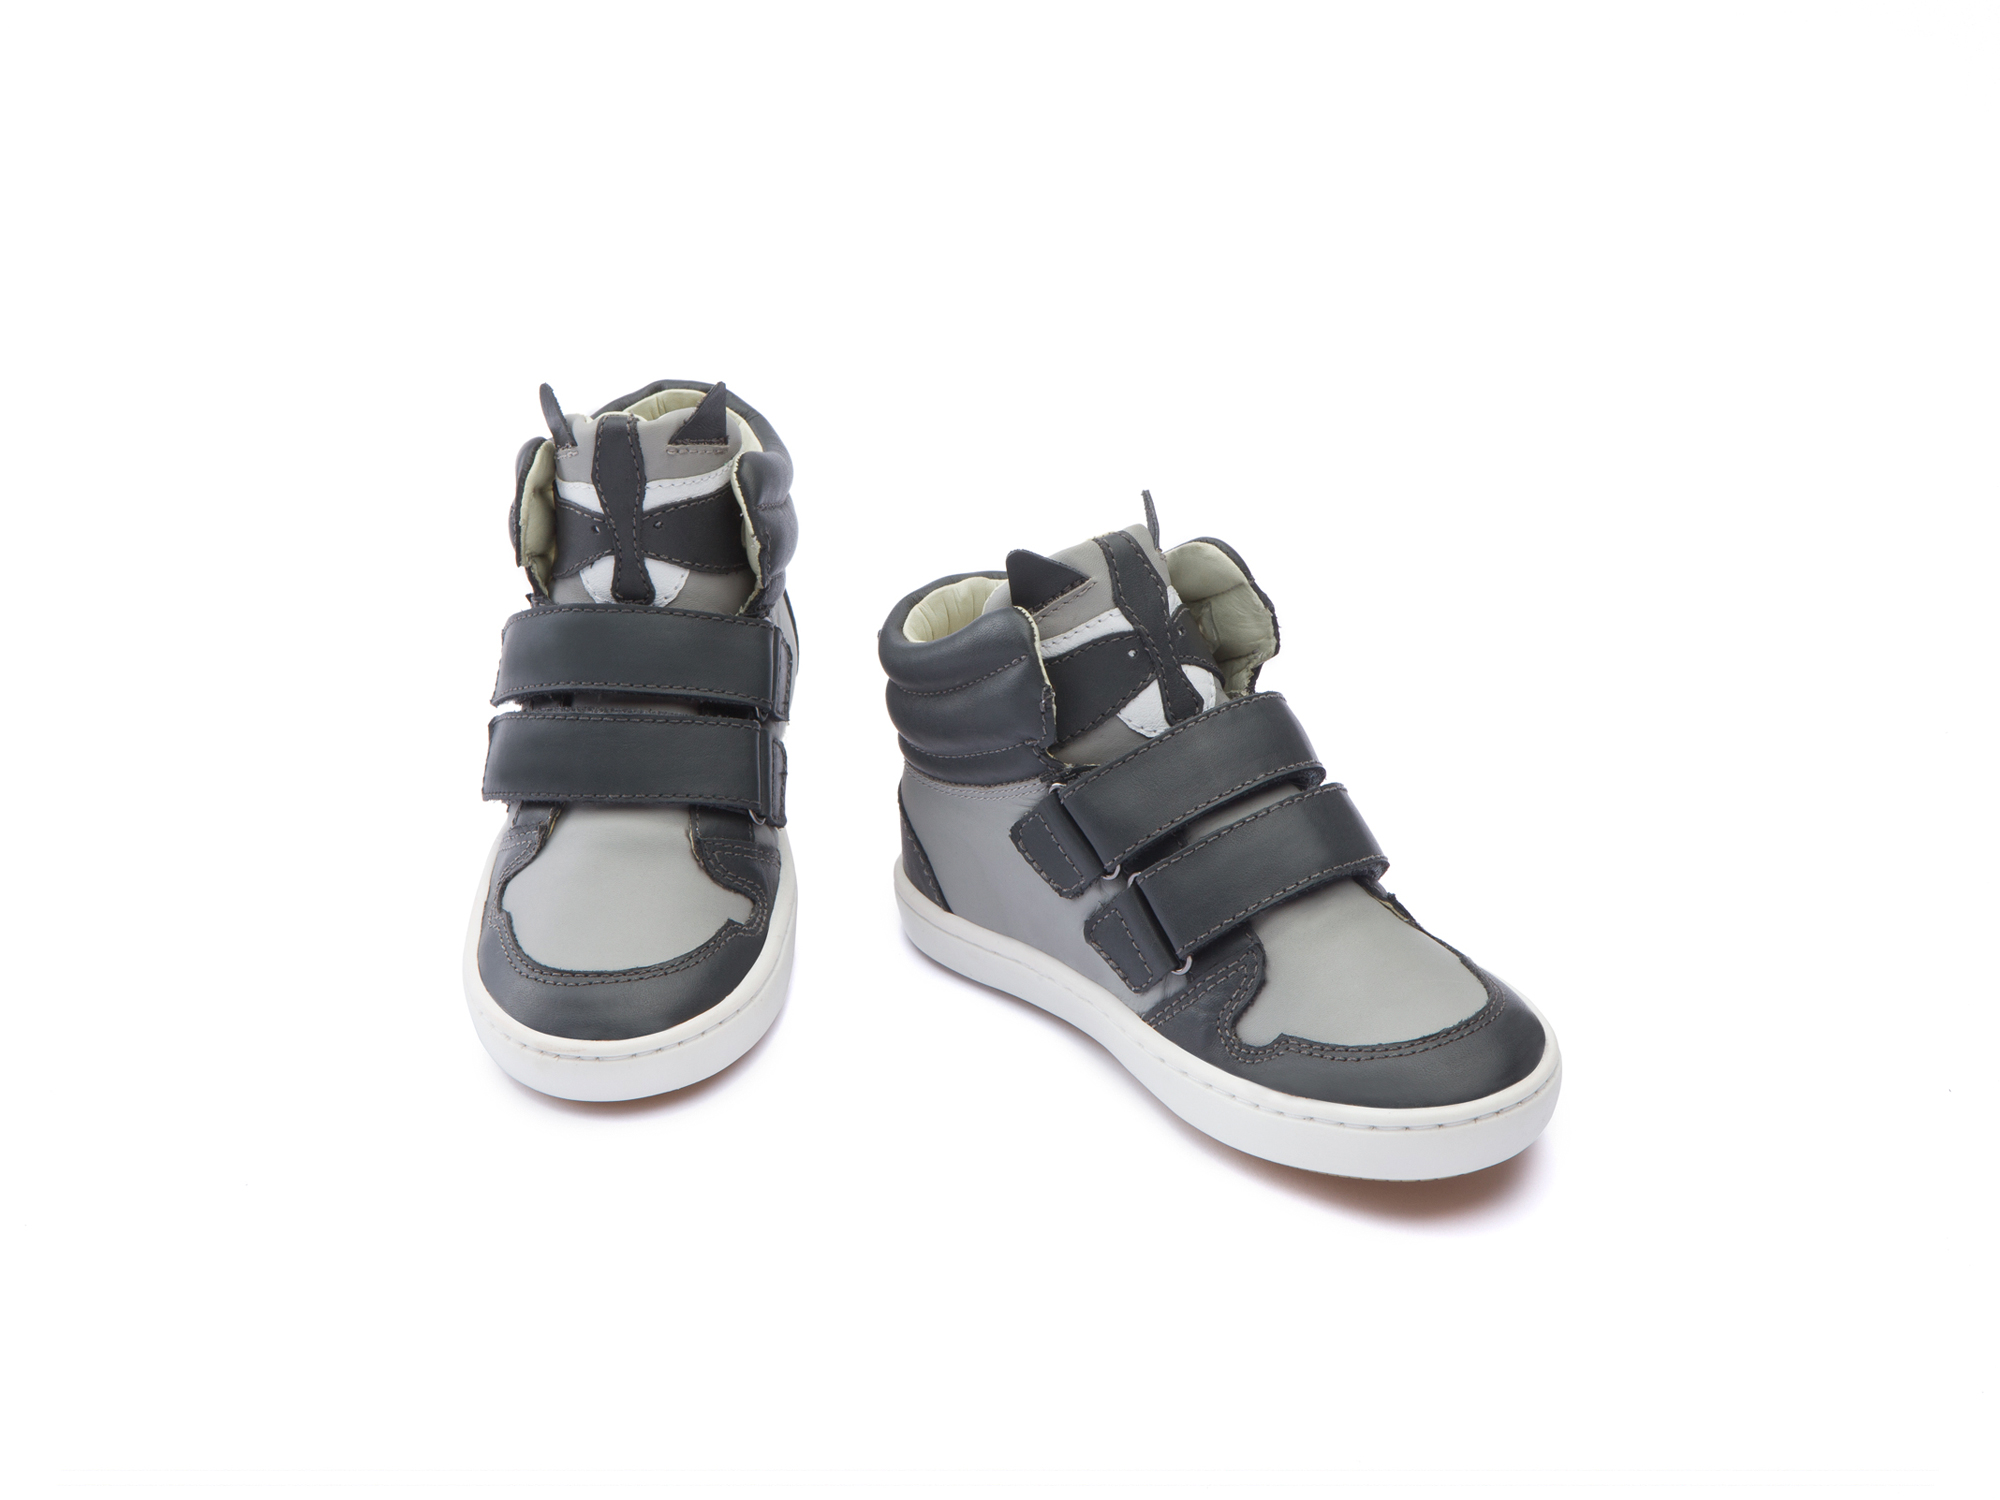 Bota Little Raccoon Ash/ Grey Clay Toddler 2 à 4 anos - 1